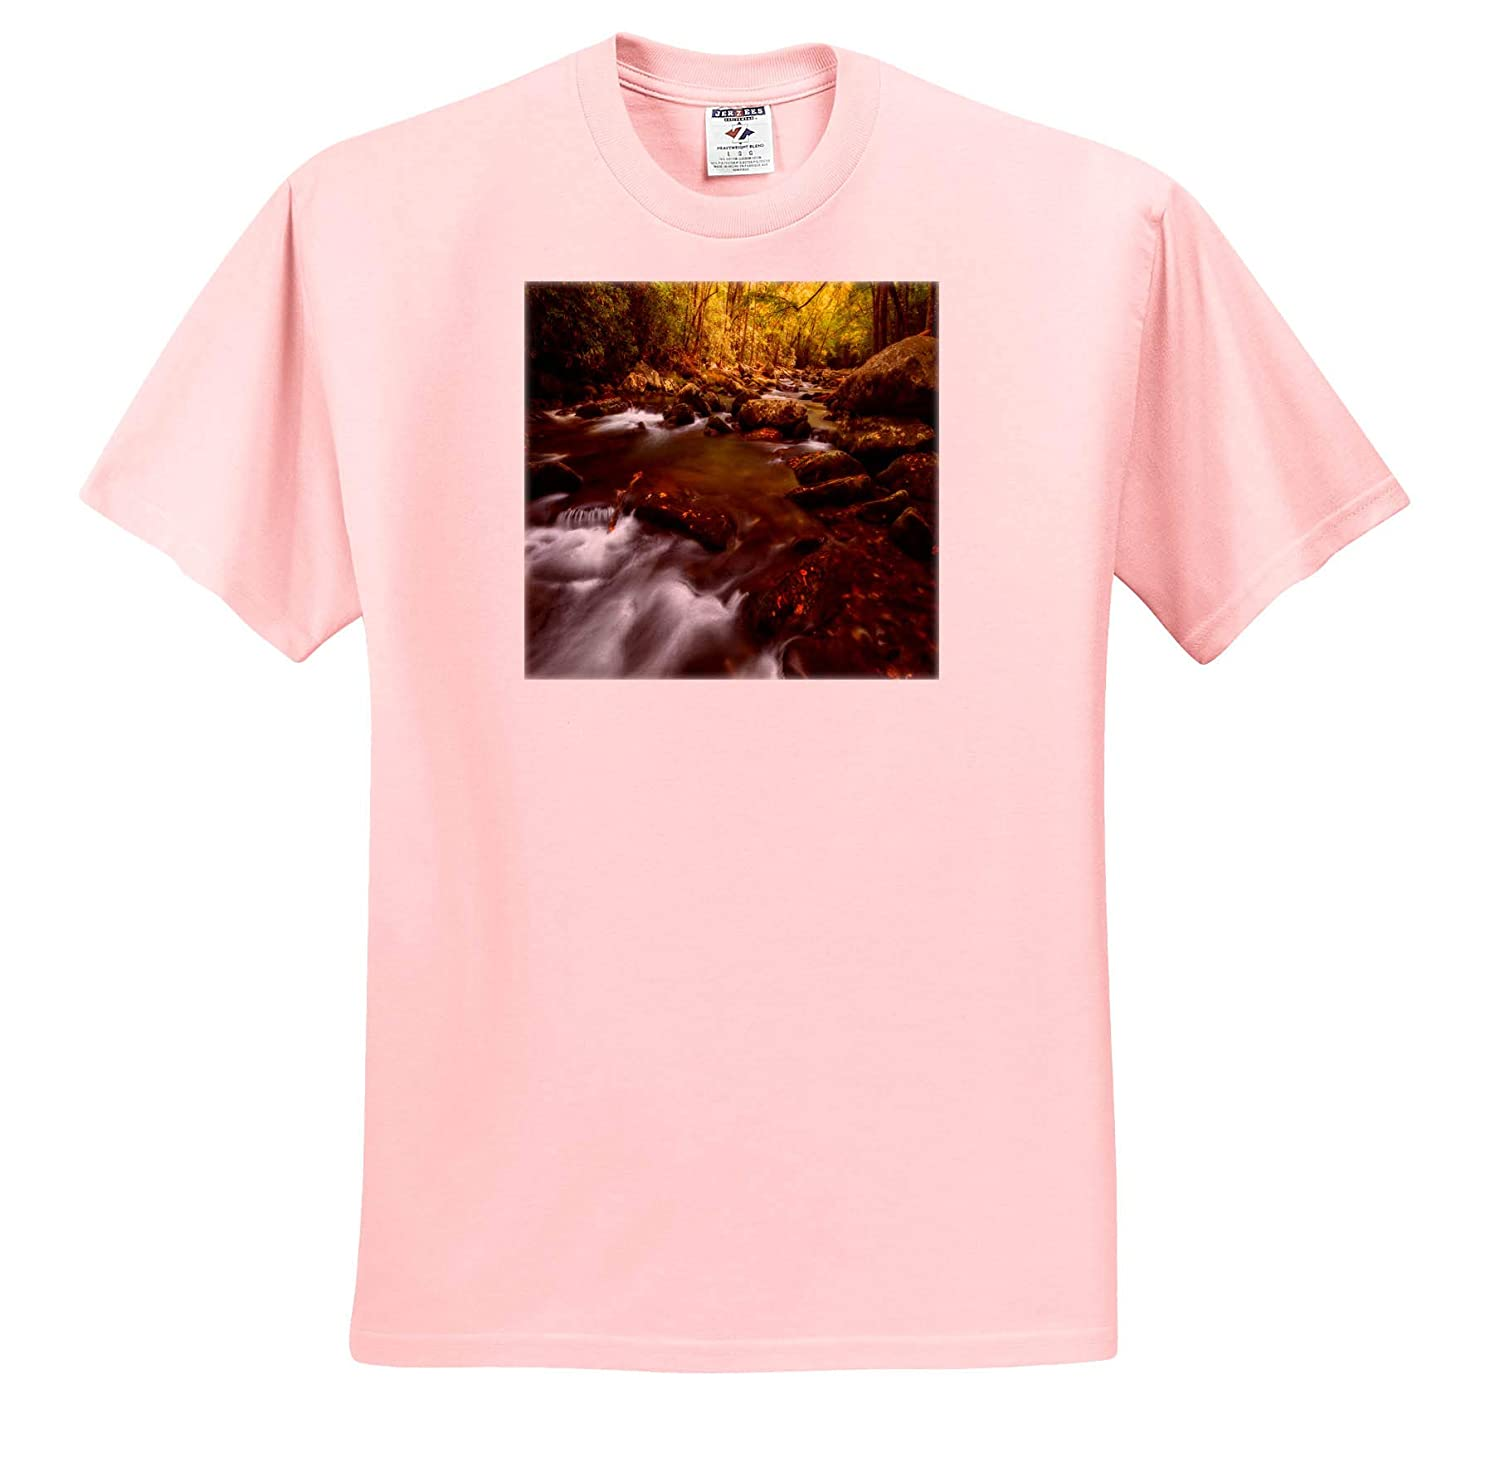 Adult T-Shirt XL ts/_309084 Leaves Shine in The Autumn Sun Along River Landscapes 3dRose Mike Swindle Photography